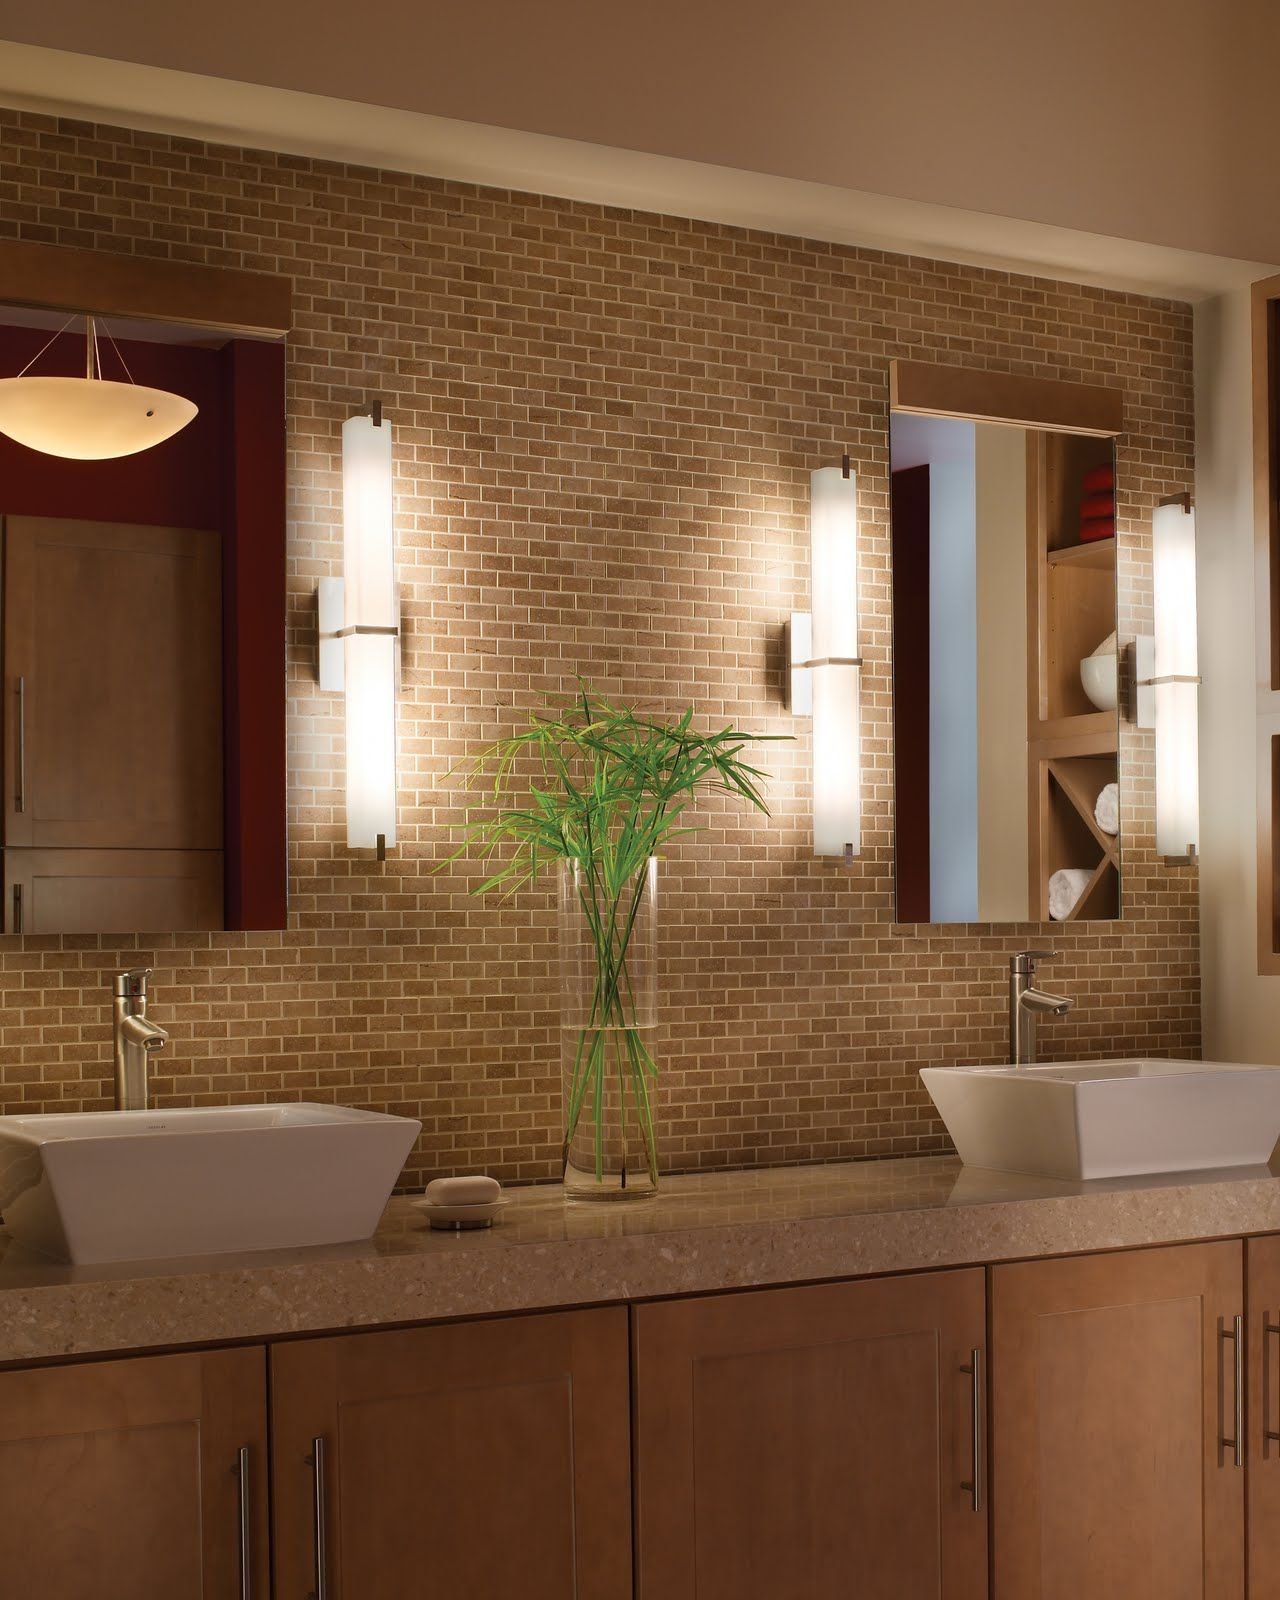 Bathroom Lights On Sale bathroom vanity lighting covered in maximum aesthetic - http://www